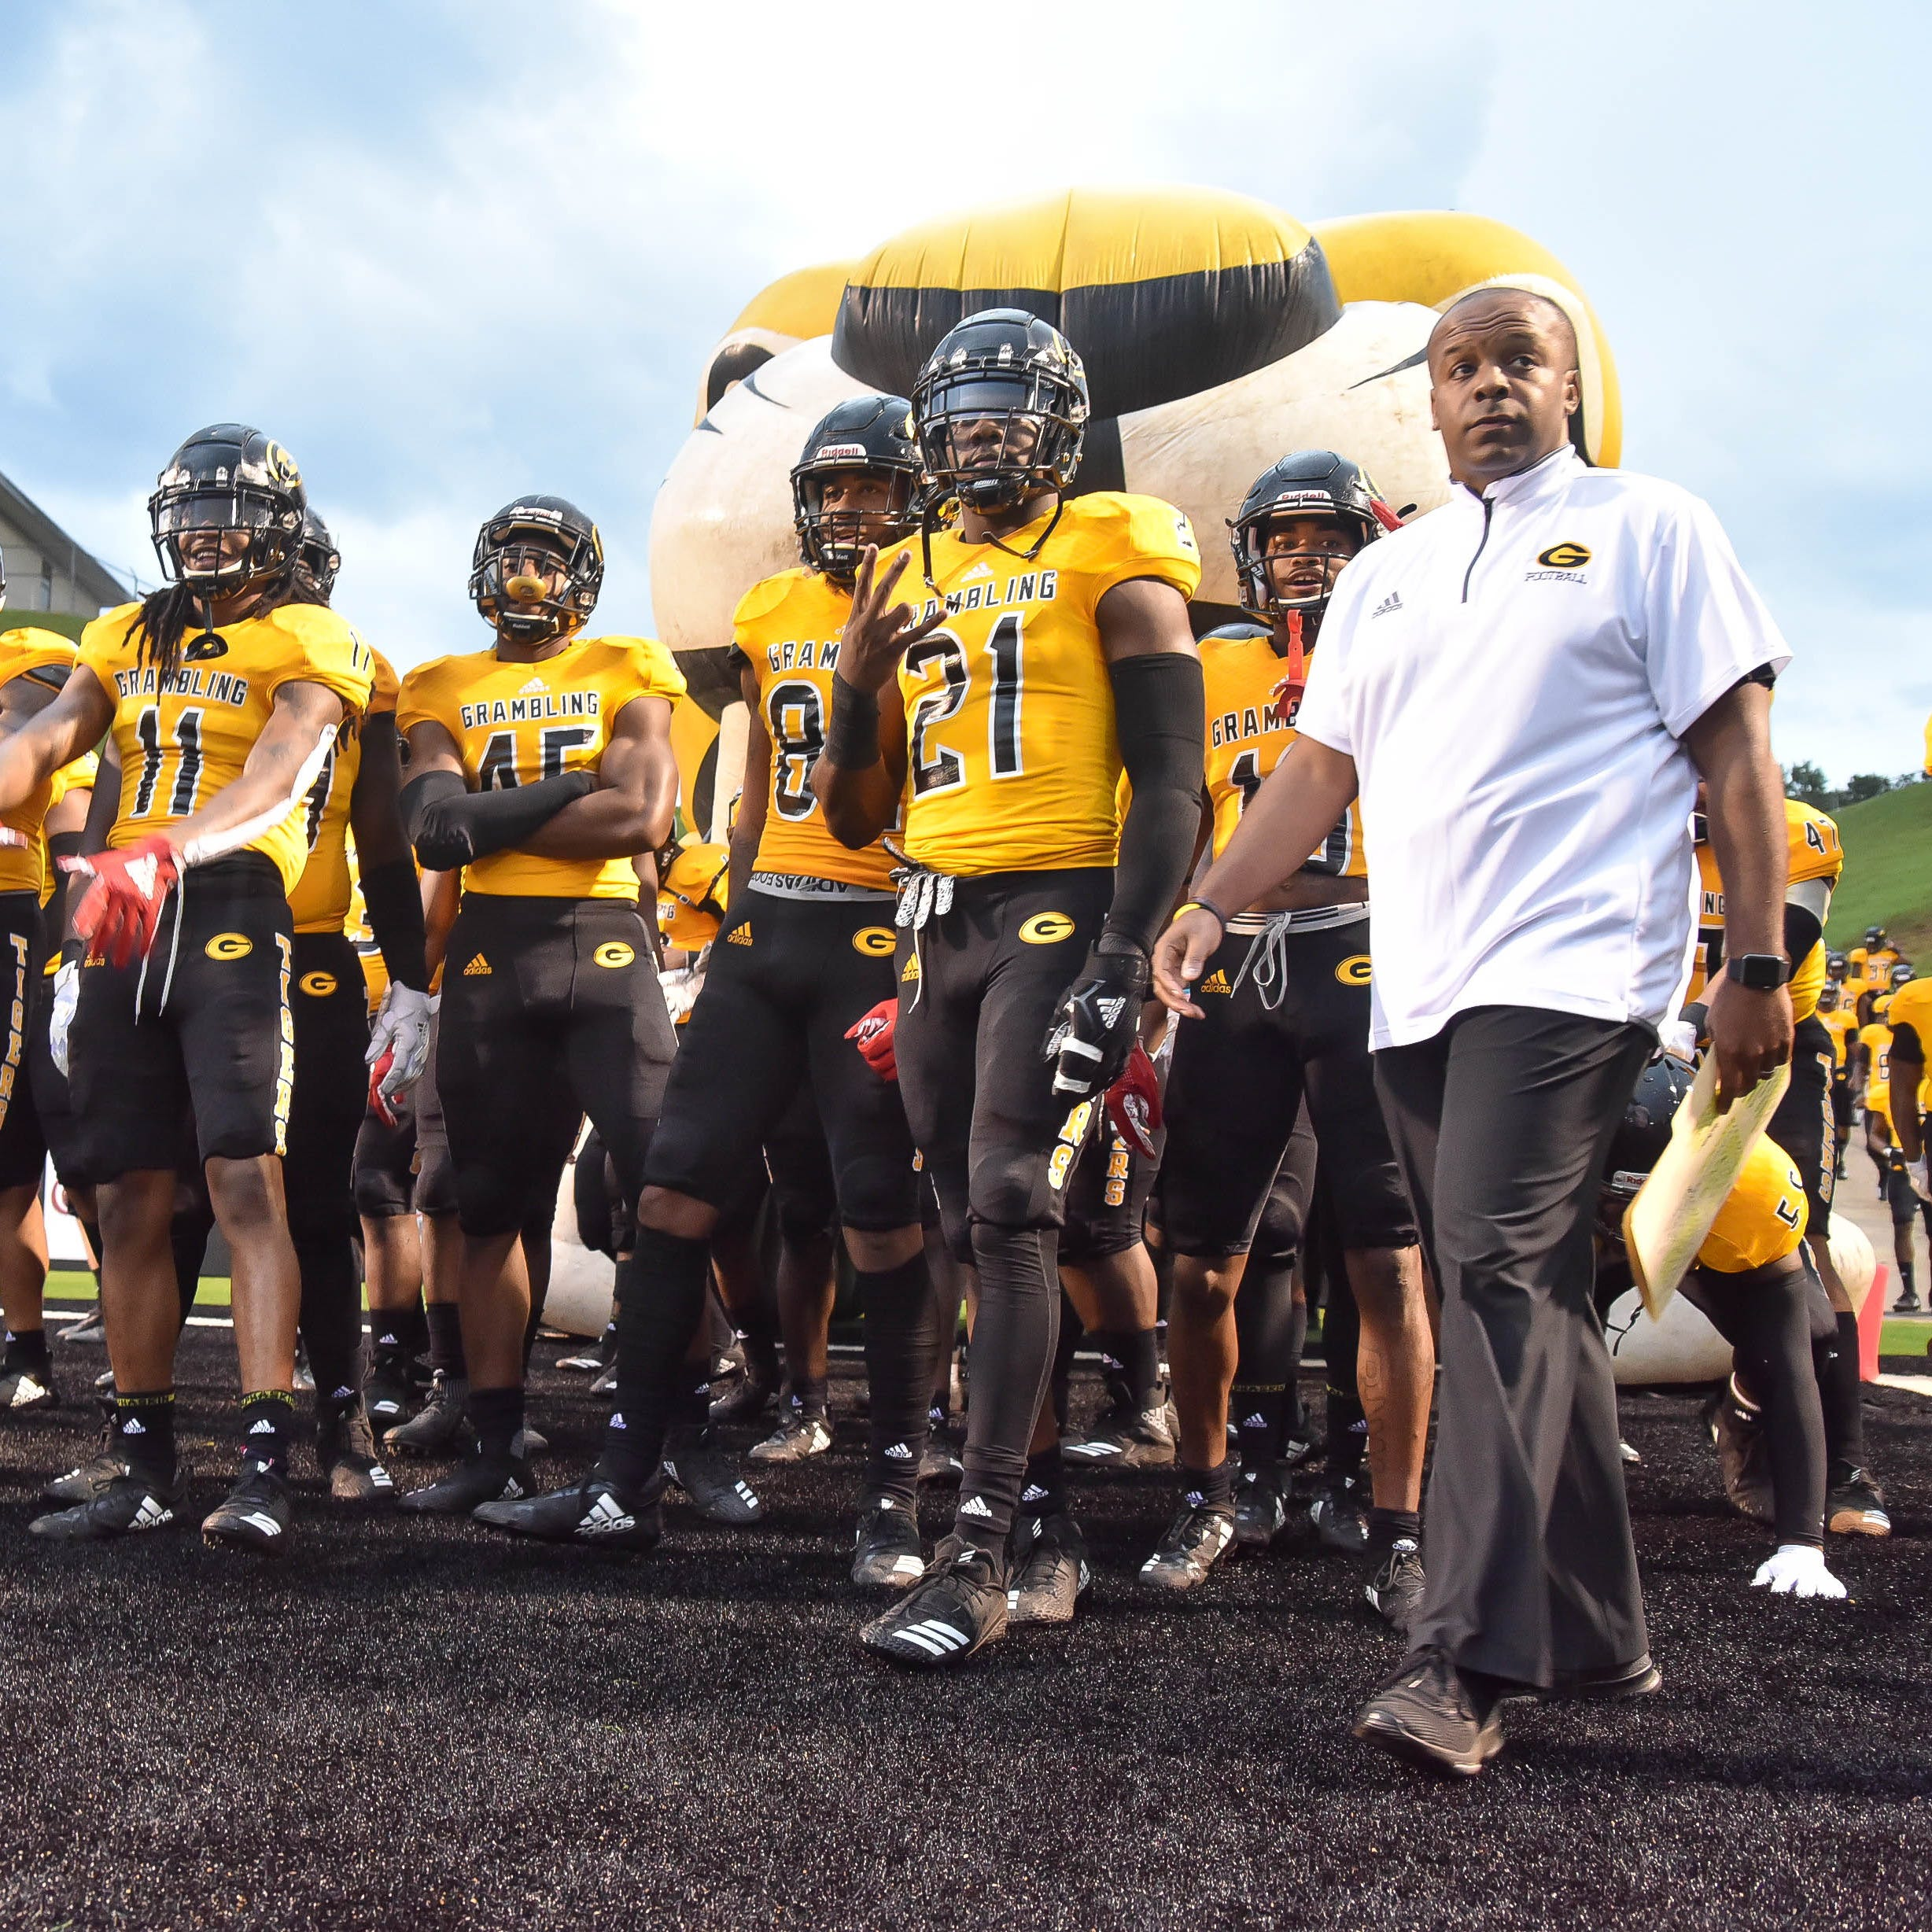 Defense helps Grambling defeat Alabama A&M for third straight win